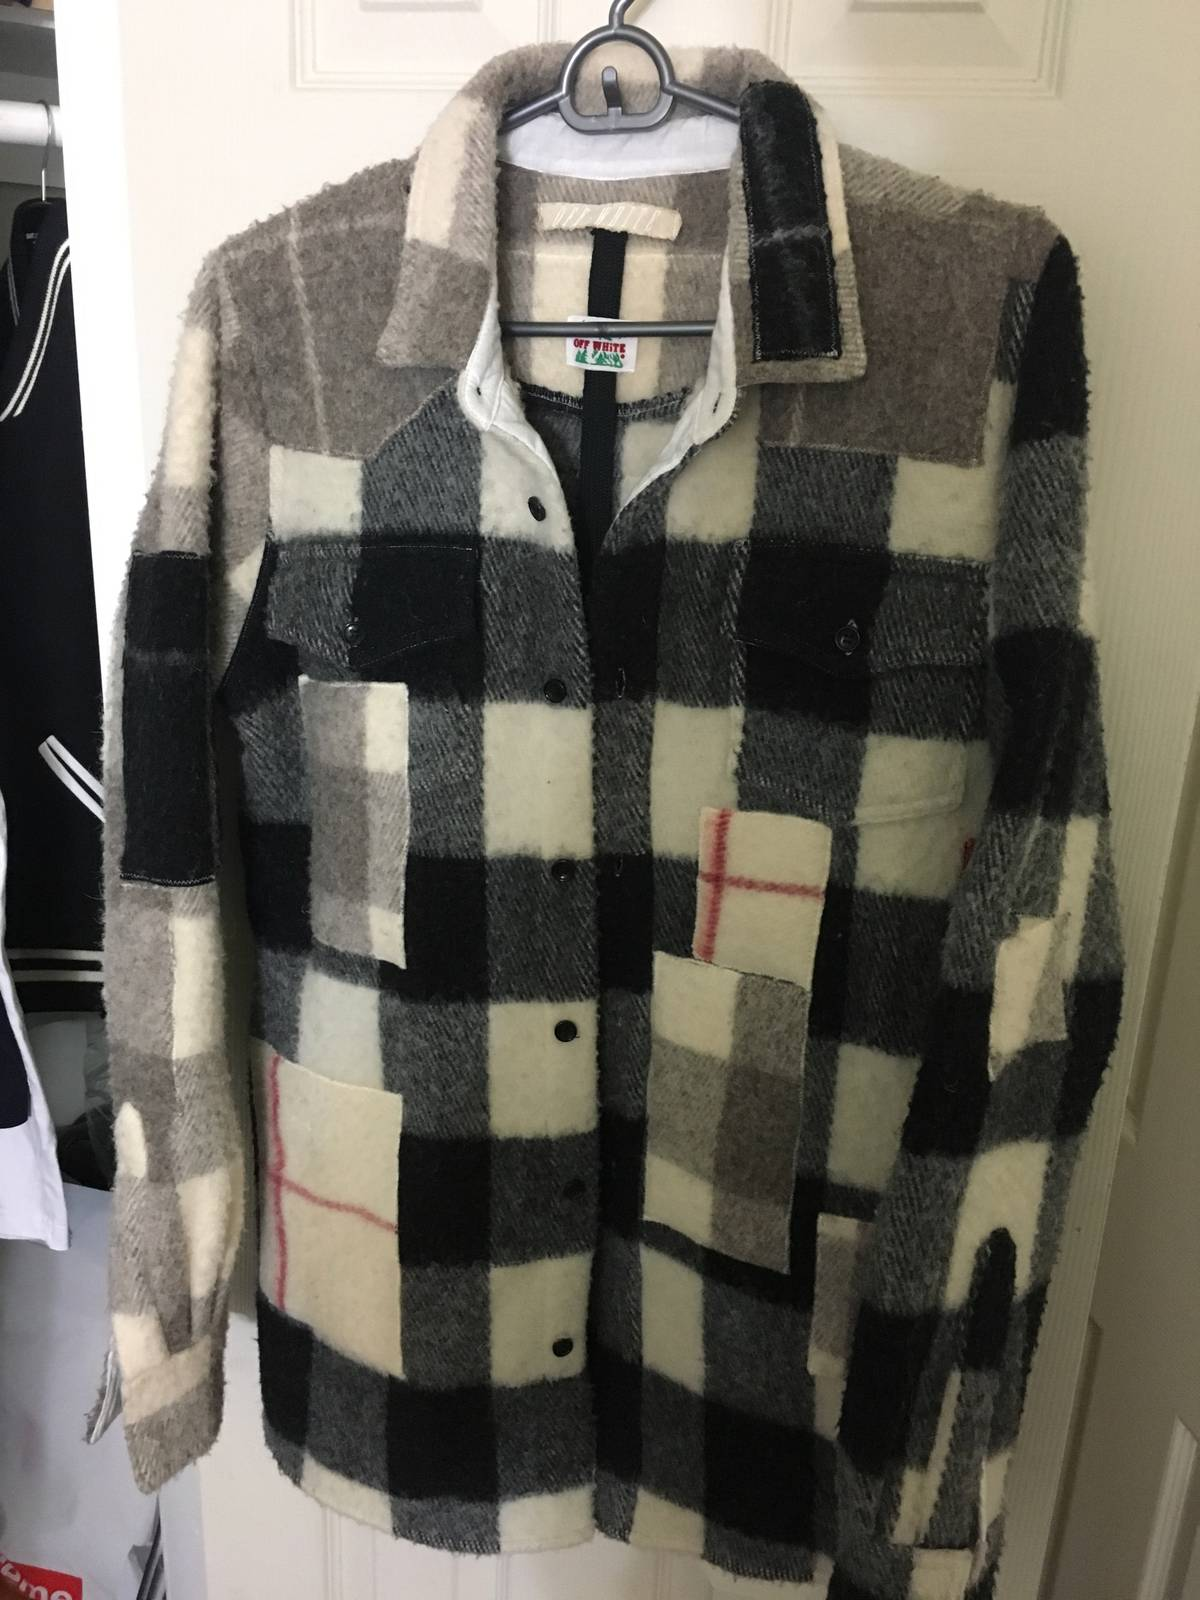 80bba0bc2ea6 Off-White patchwork flannel oversized sz M Size xxs - Shirts (Button Ups)  for Sale - Grailed